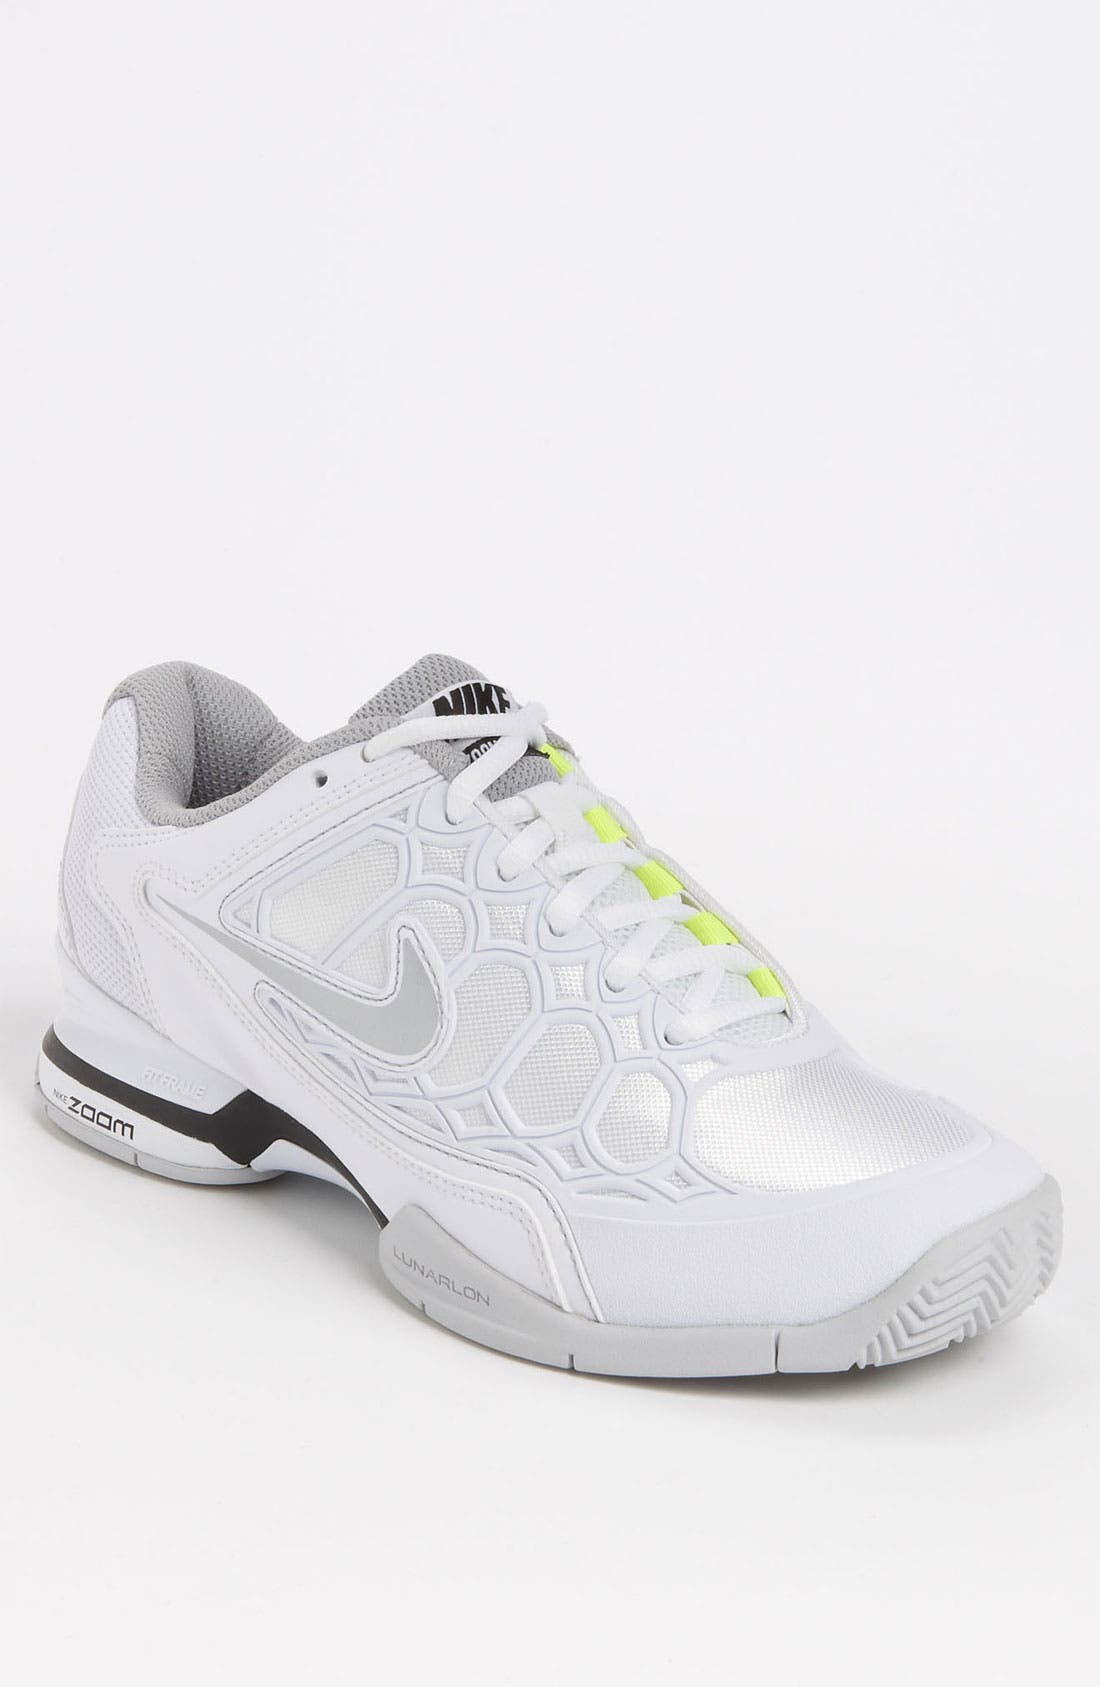 Main Image - Nike 'Zoom Breathe 2K12' Tennis Shoe (Women)